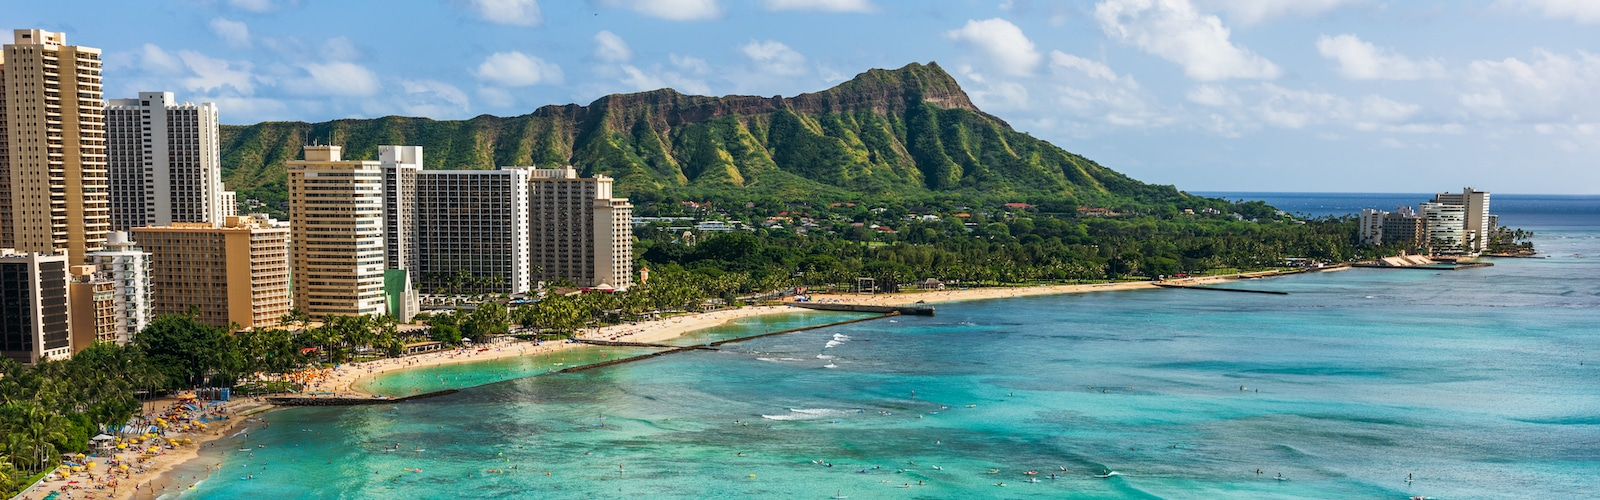 What's New on Oahu, Hawaii